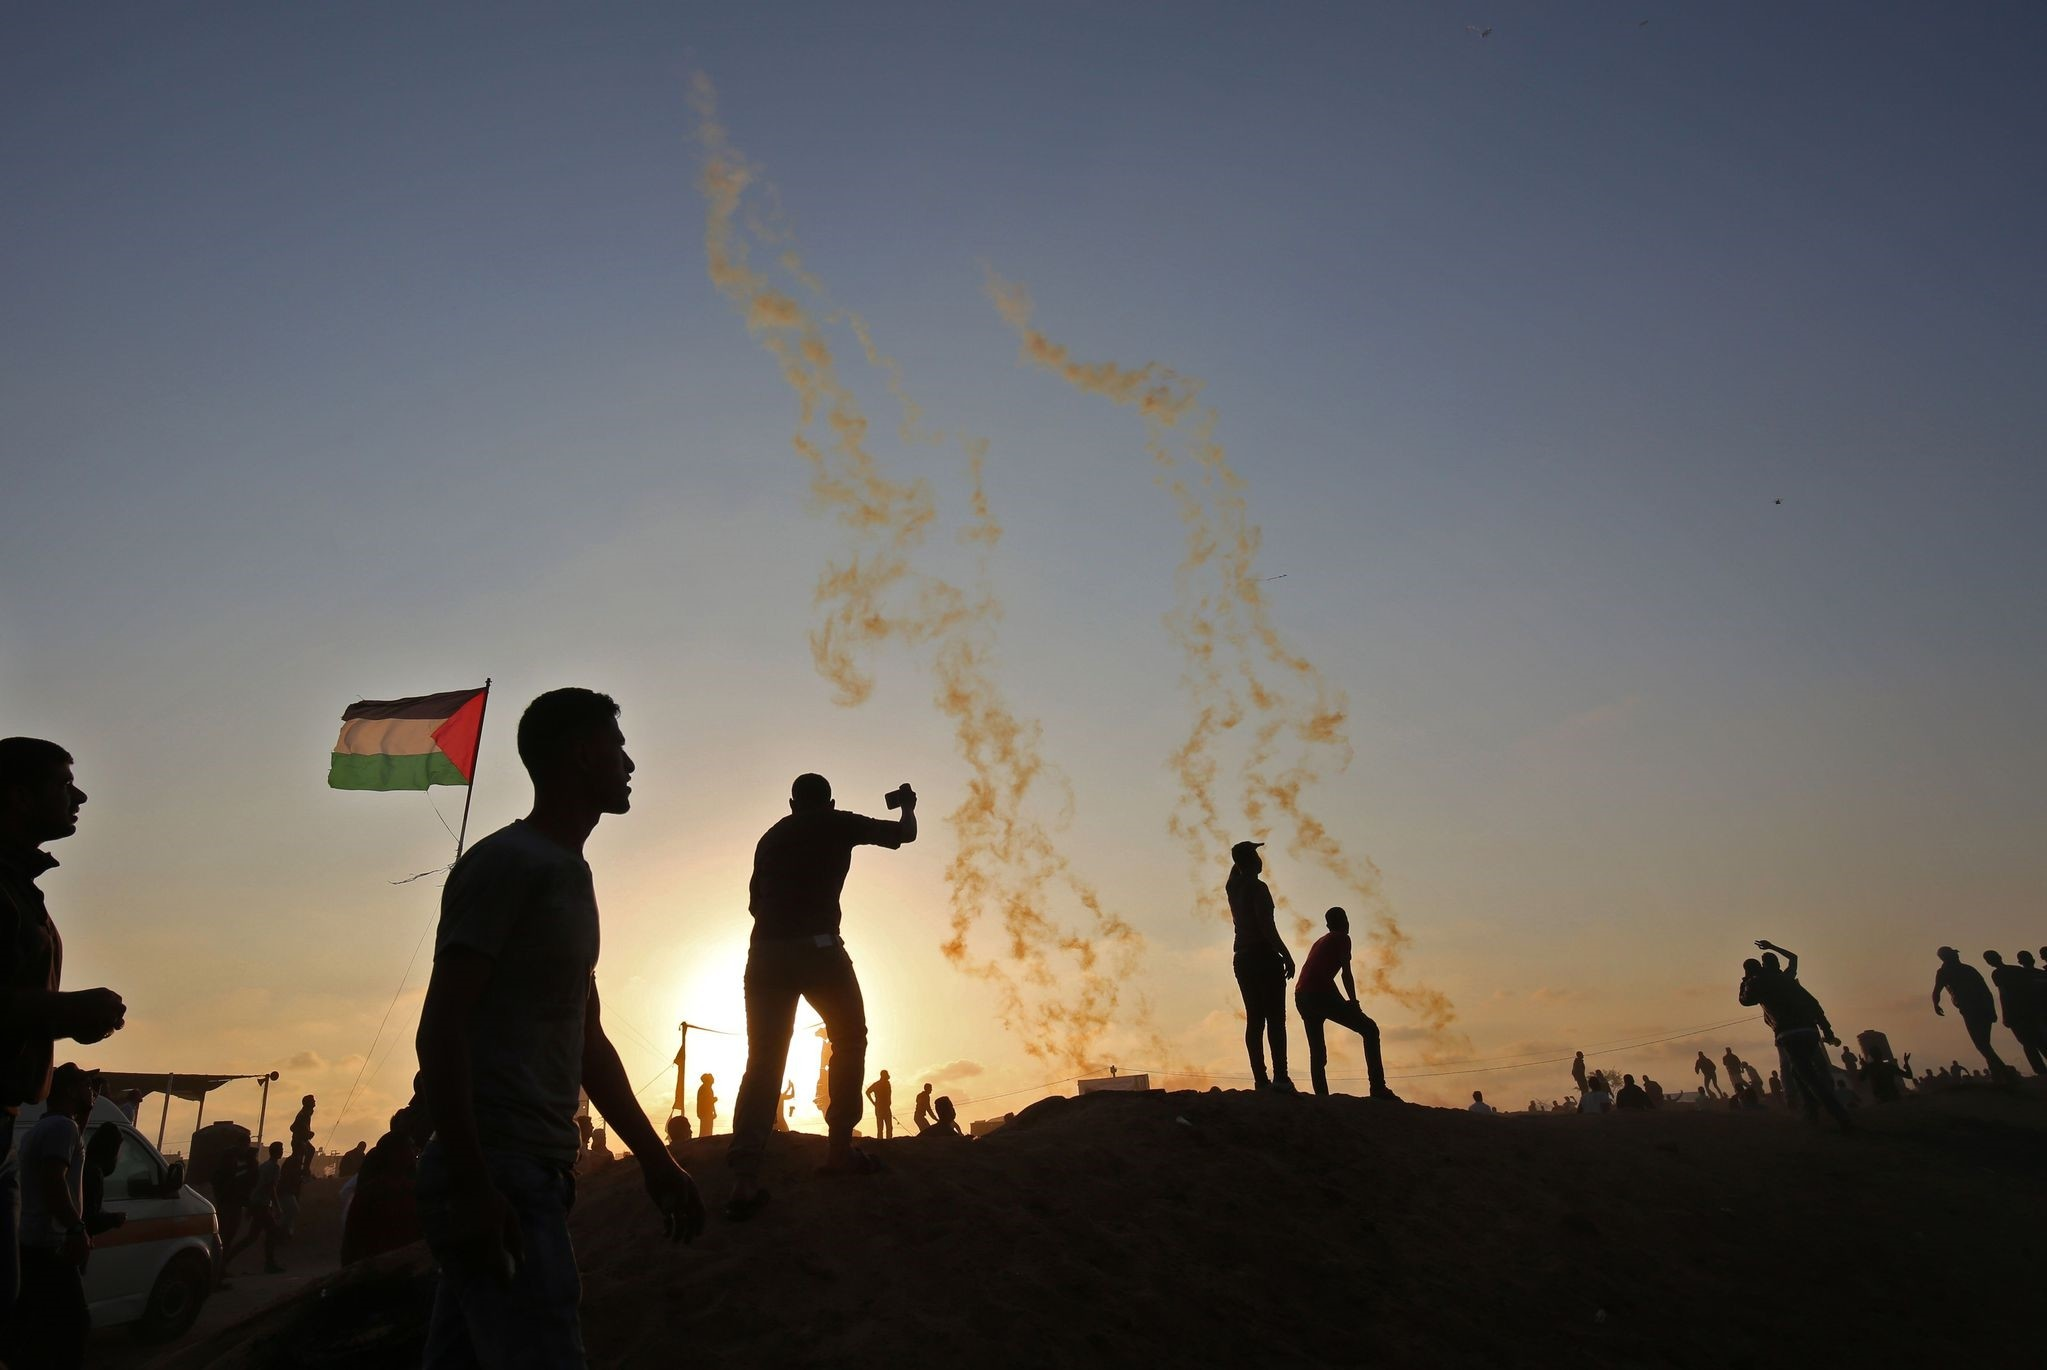 Palestinians protest as tear gas fumes erupt near the border with Israel in the southern Gaza Strip on May 15, marking 70th anniversary of Nakba.